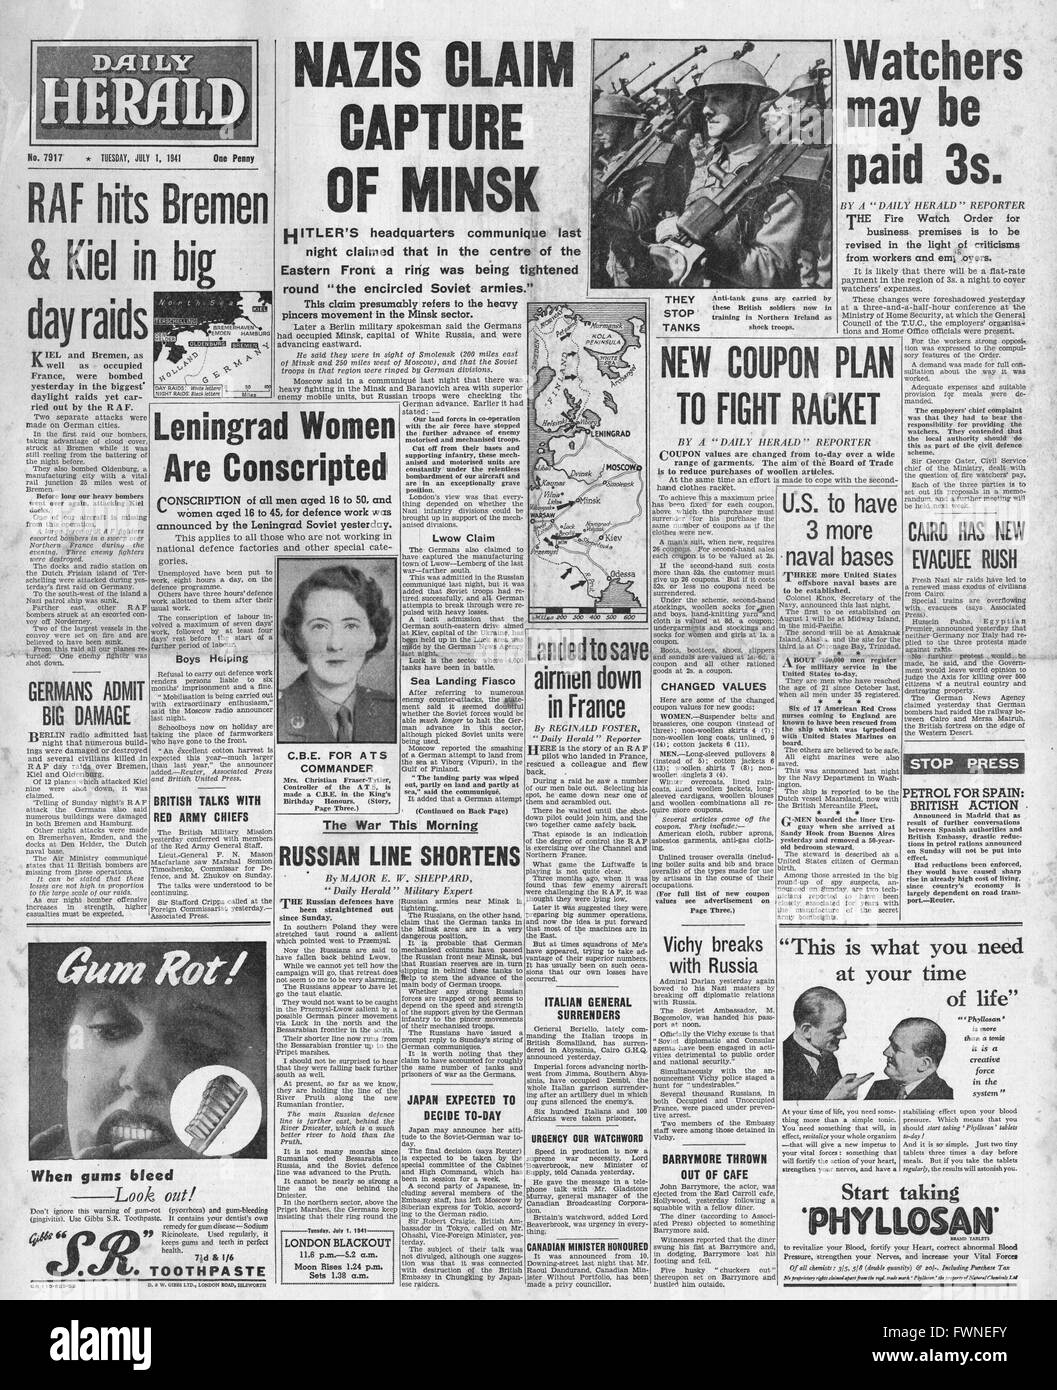 1941 front page  Daily Herald German Forces capture Minsk and RAF bomb Bremen and Kiel Stock Photo